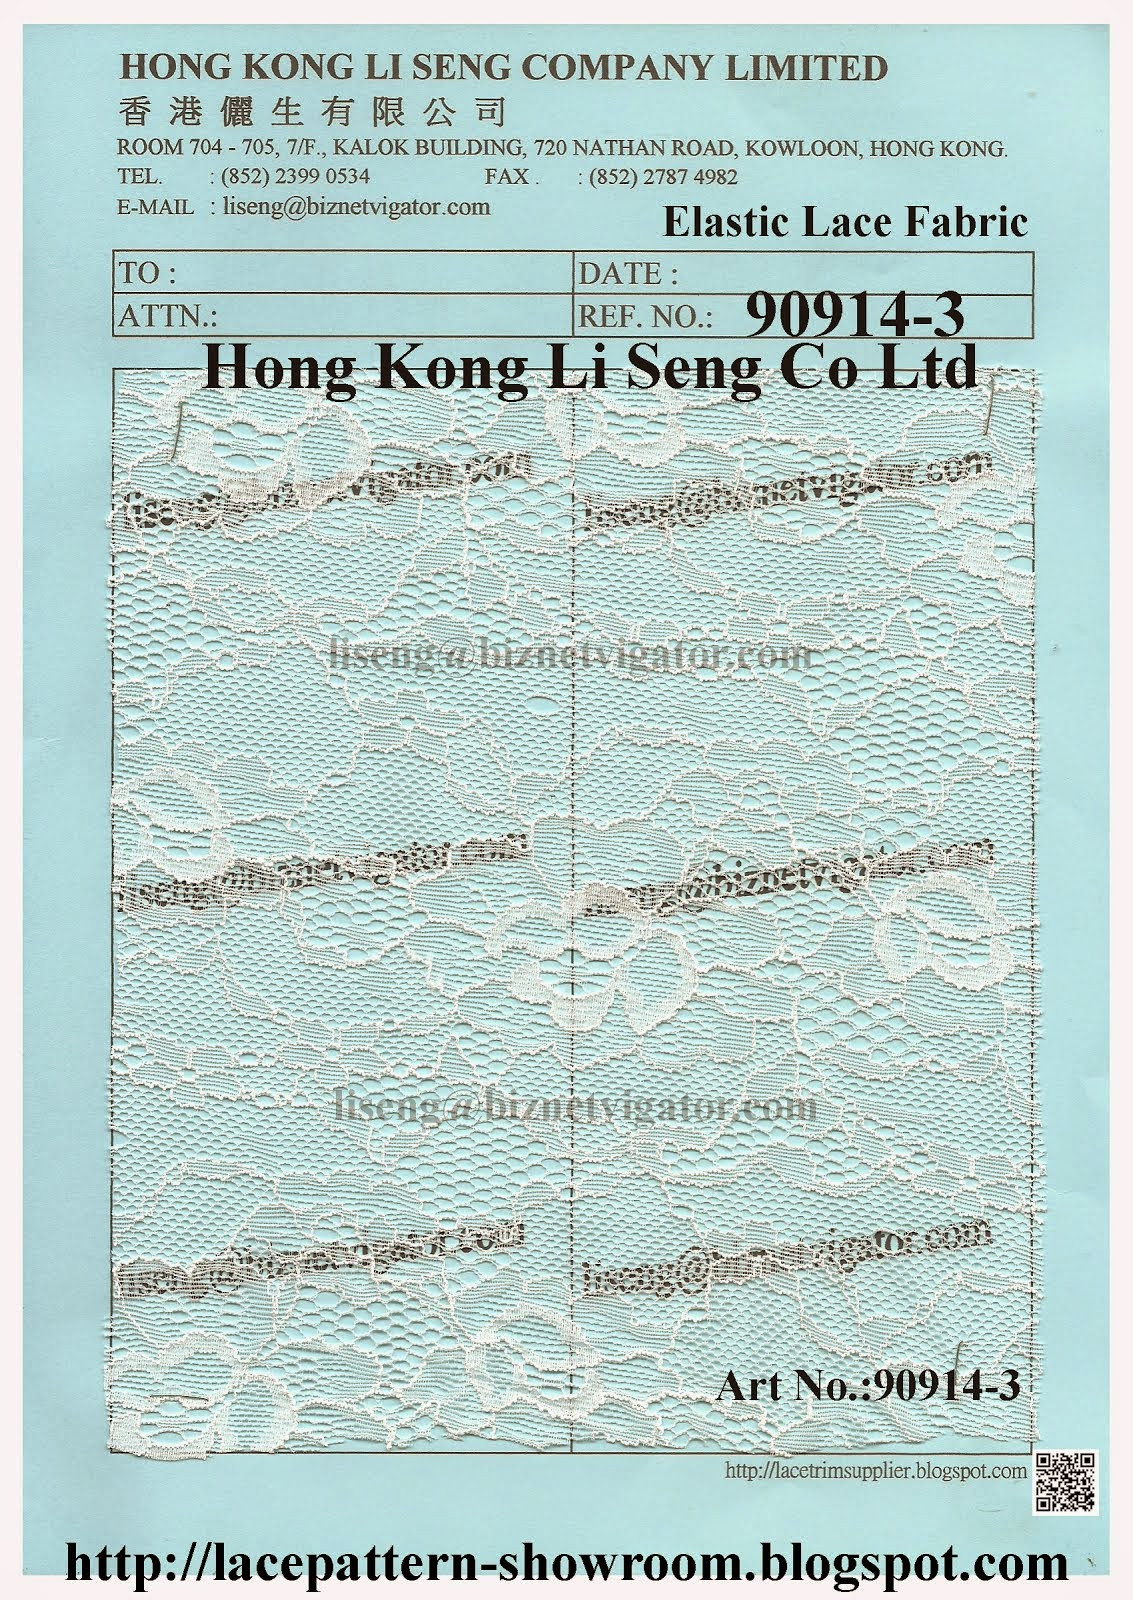 Elastic Lace Fabric Wholesale - Hong Kong Li Seng Co Ltd